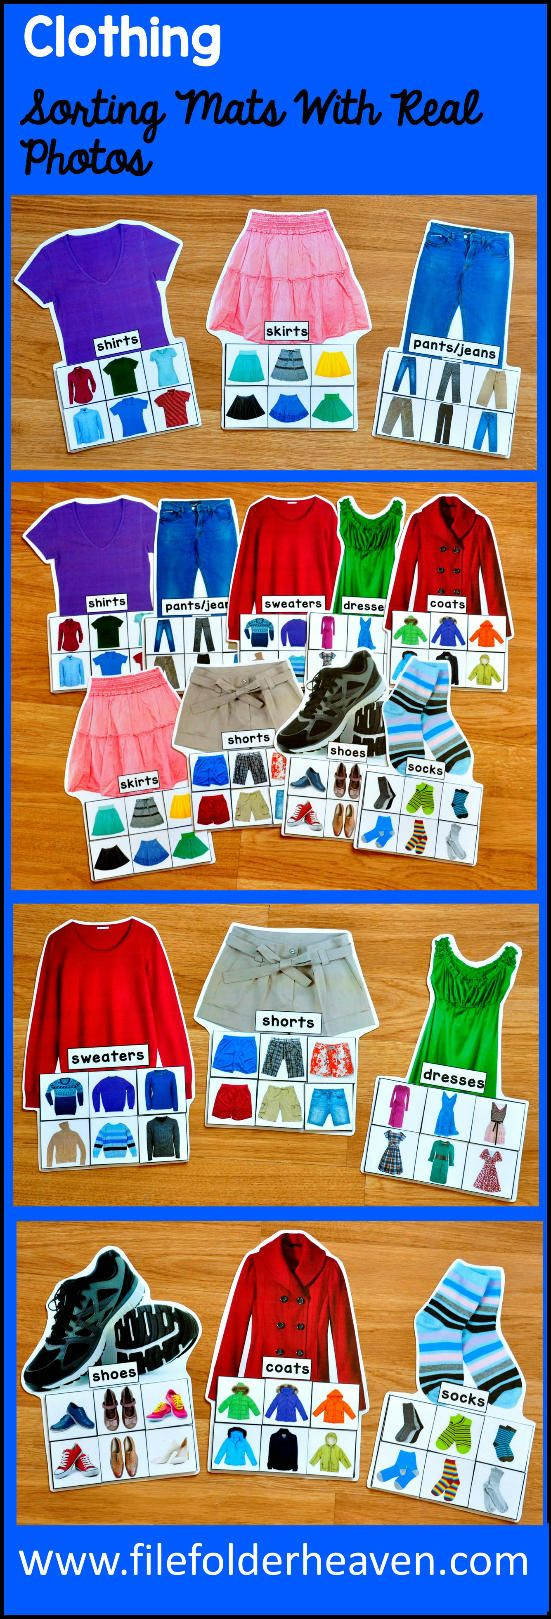 These Clothing Sorting Mats w/ Real Photos include 9 unique sorting mats that focus on identifying the things we wear or articles of clothing.  At an independent workstation, center or language group, students complete the following sorting mats by identifying the type of clothing on each sorting piece.   Sorting Mats In This Set:  Shirts Pants/Jeans Shorts Sweaters Dresses Skirts Coats Socks  Shoes